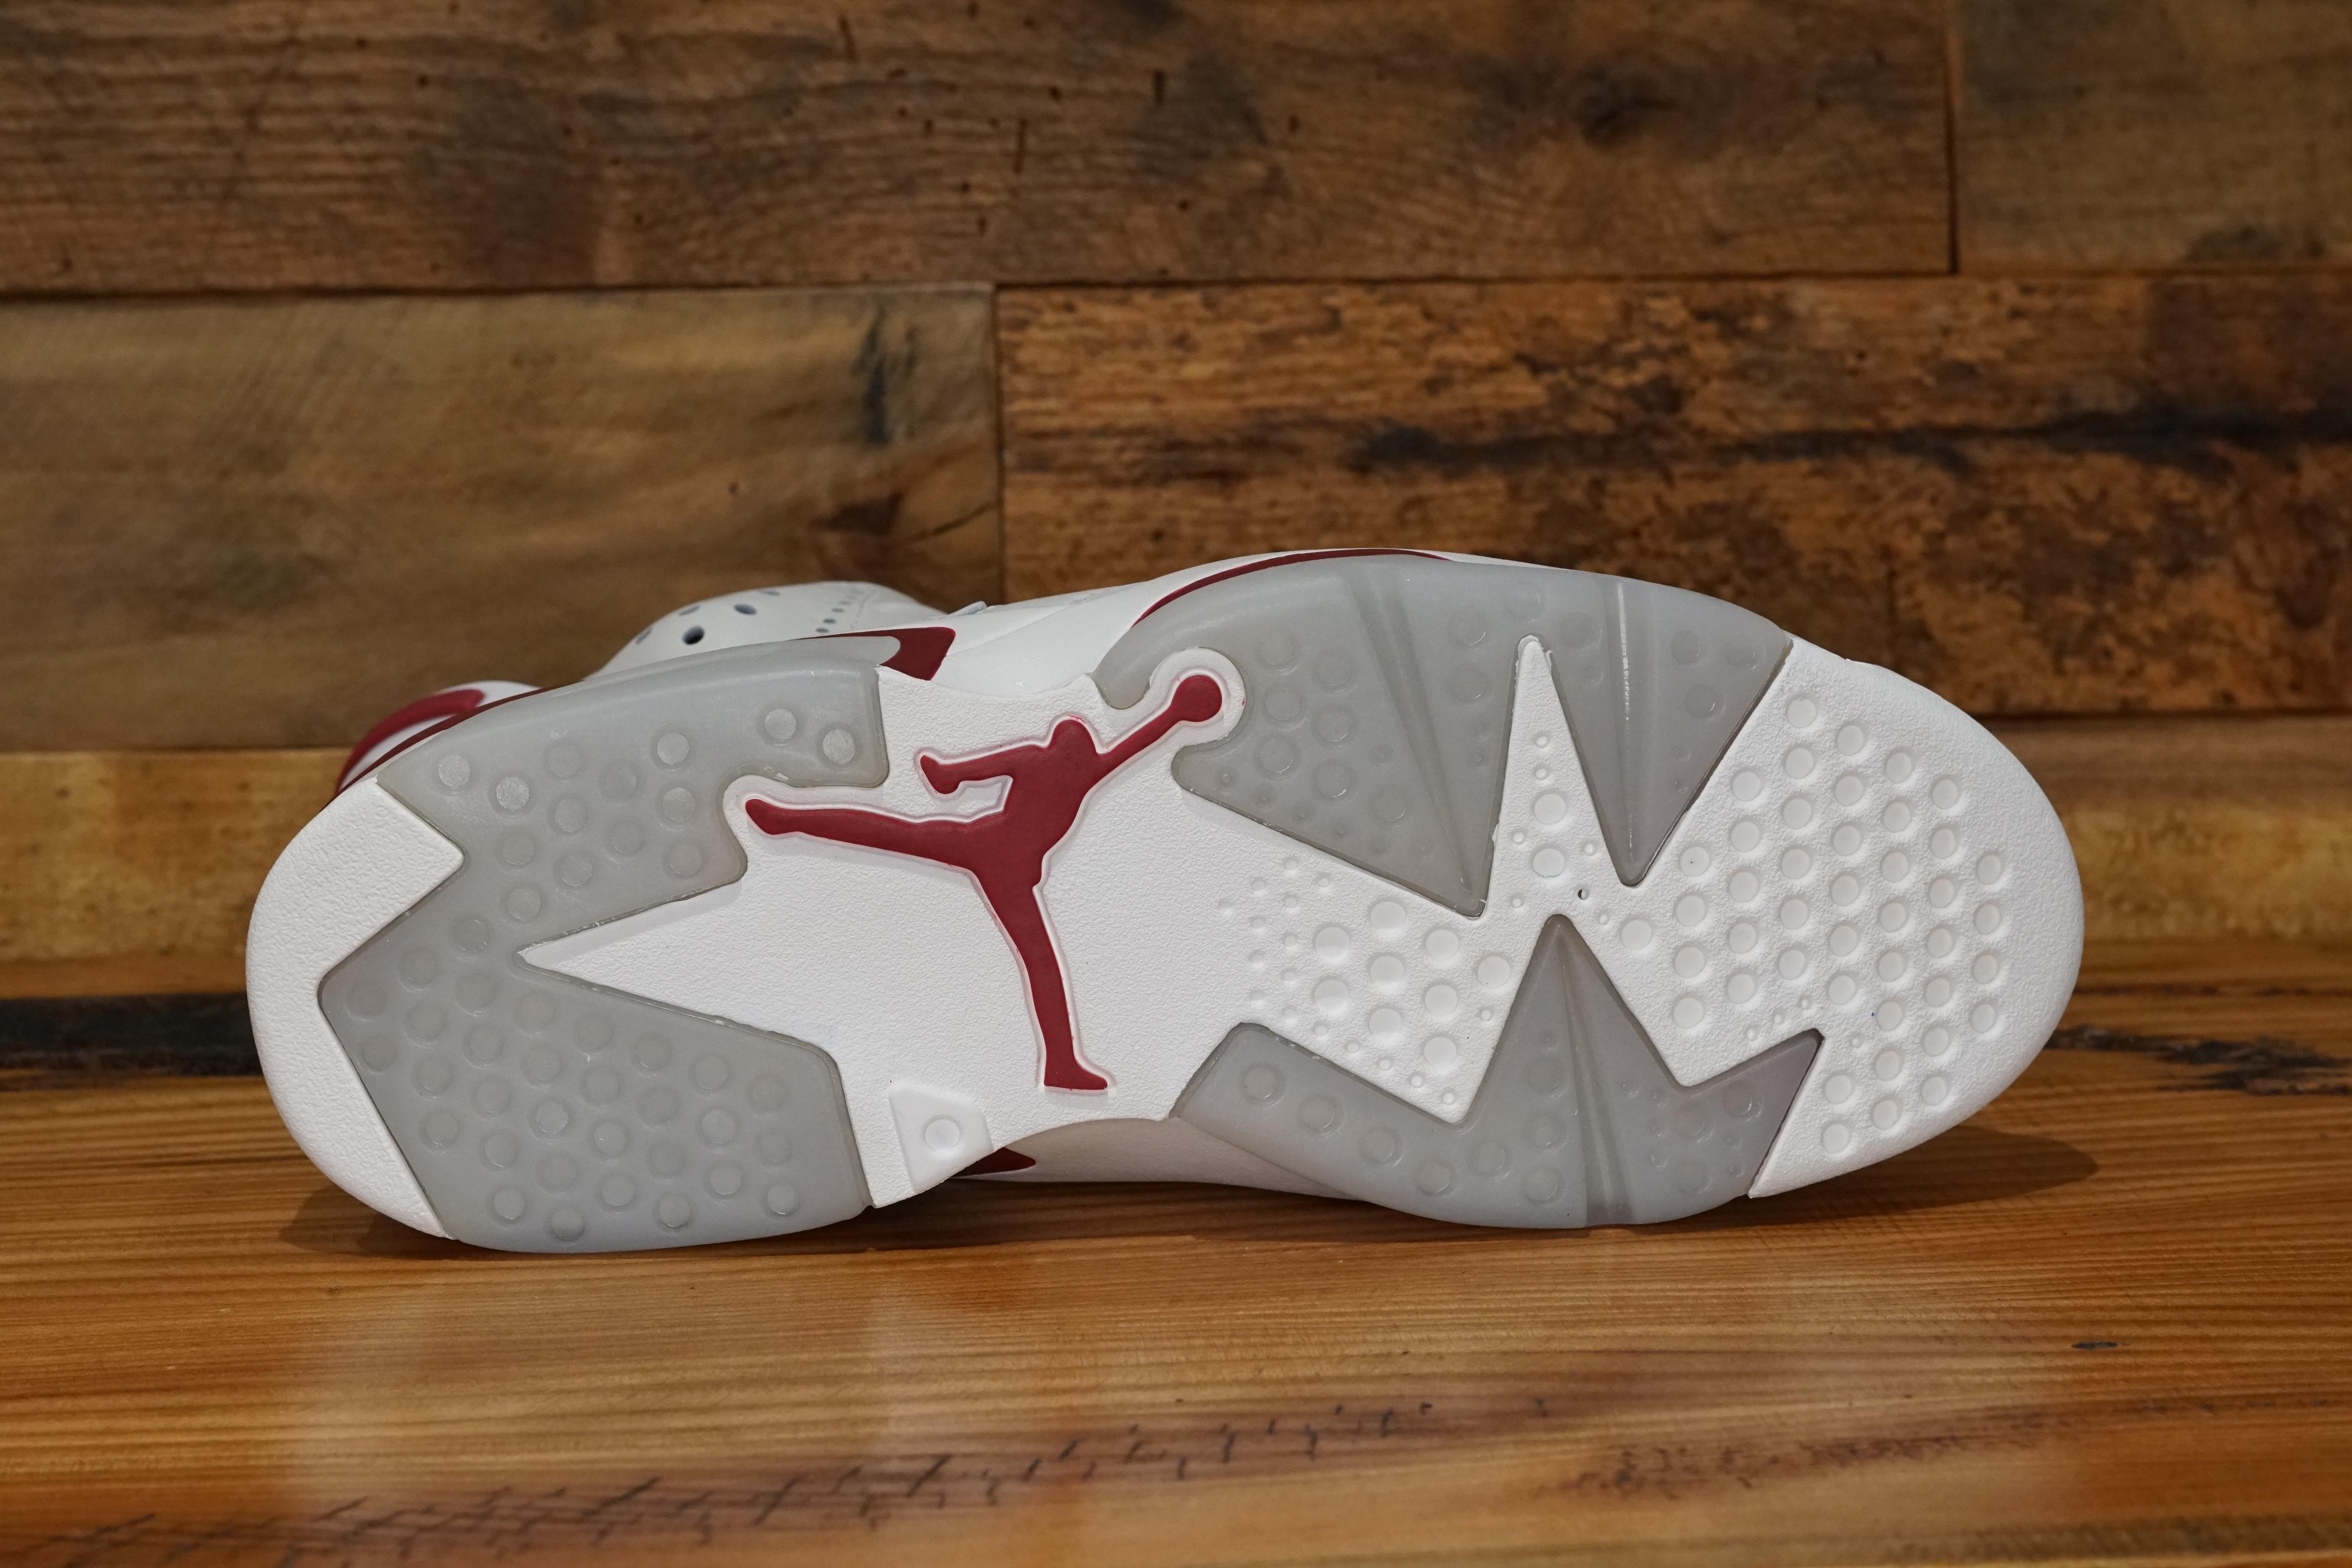 Air Jordan 6 Tamaño Marrón 11 GuagAQv